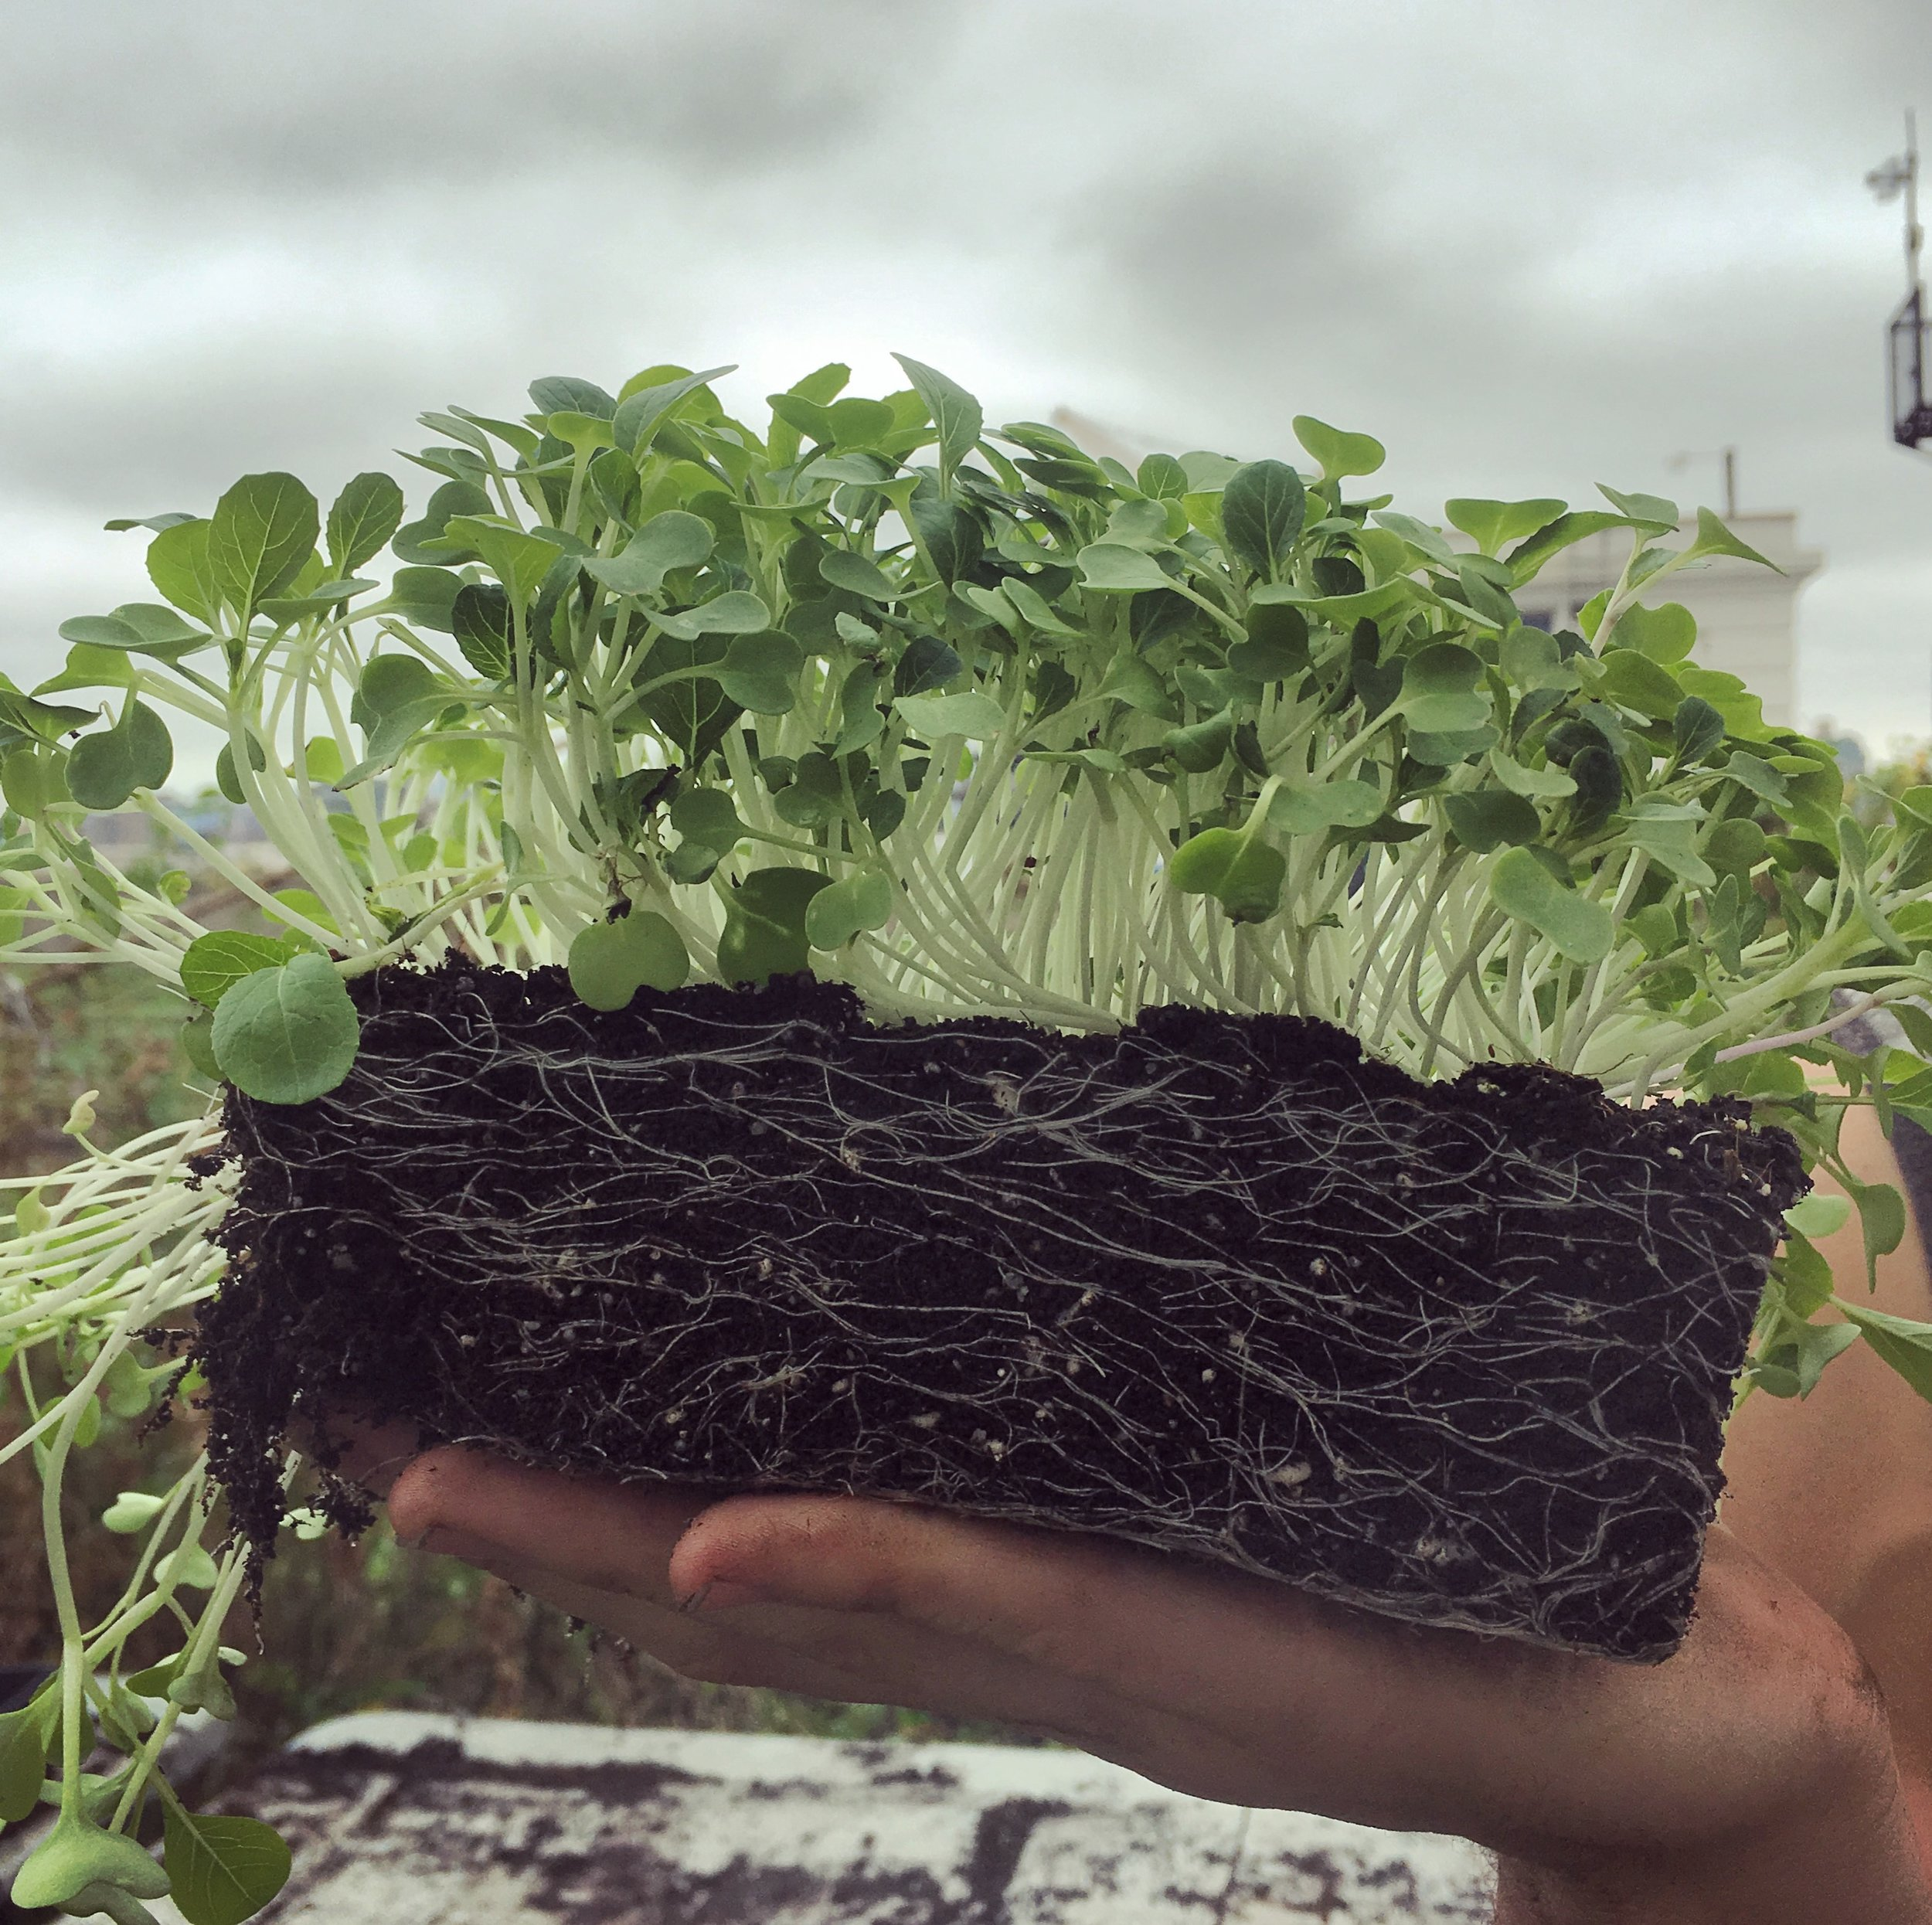 Micro-greens in soil